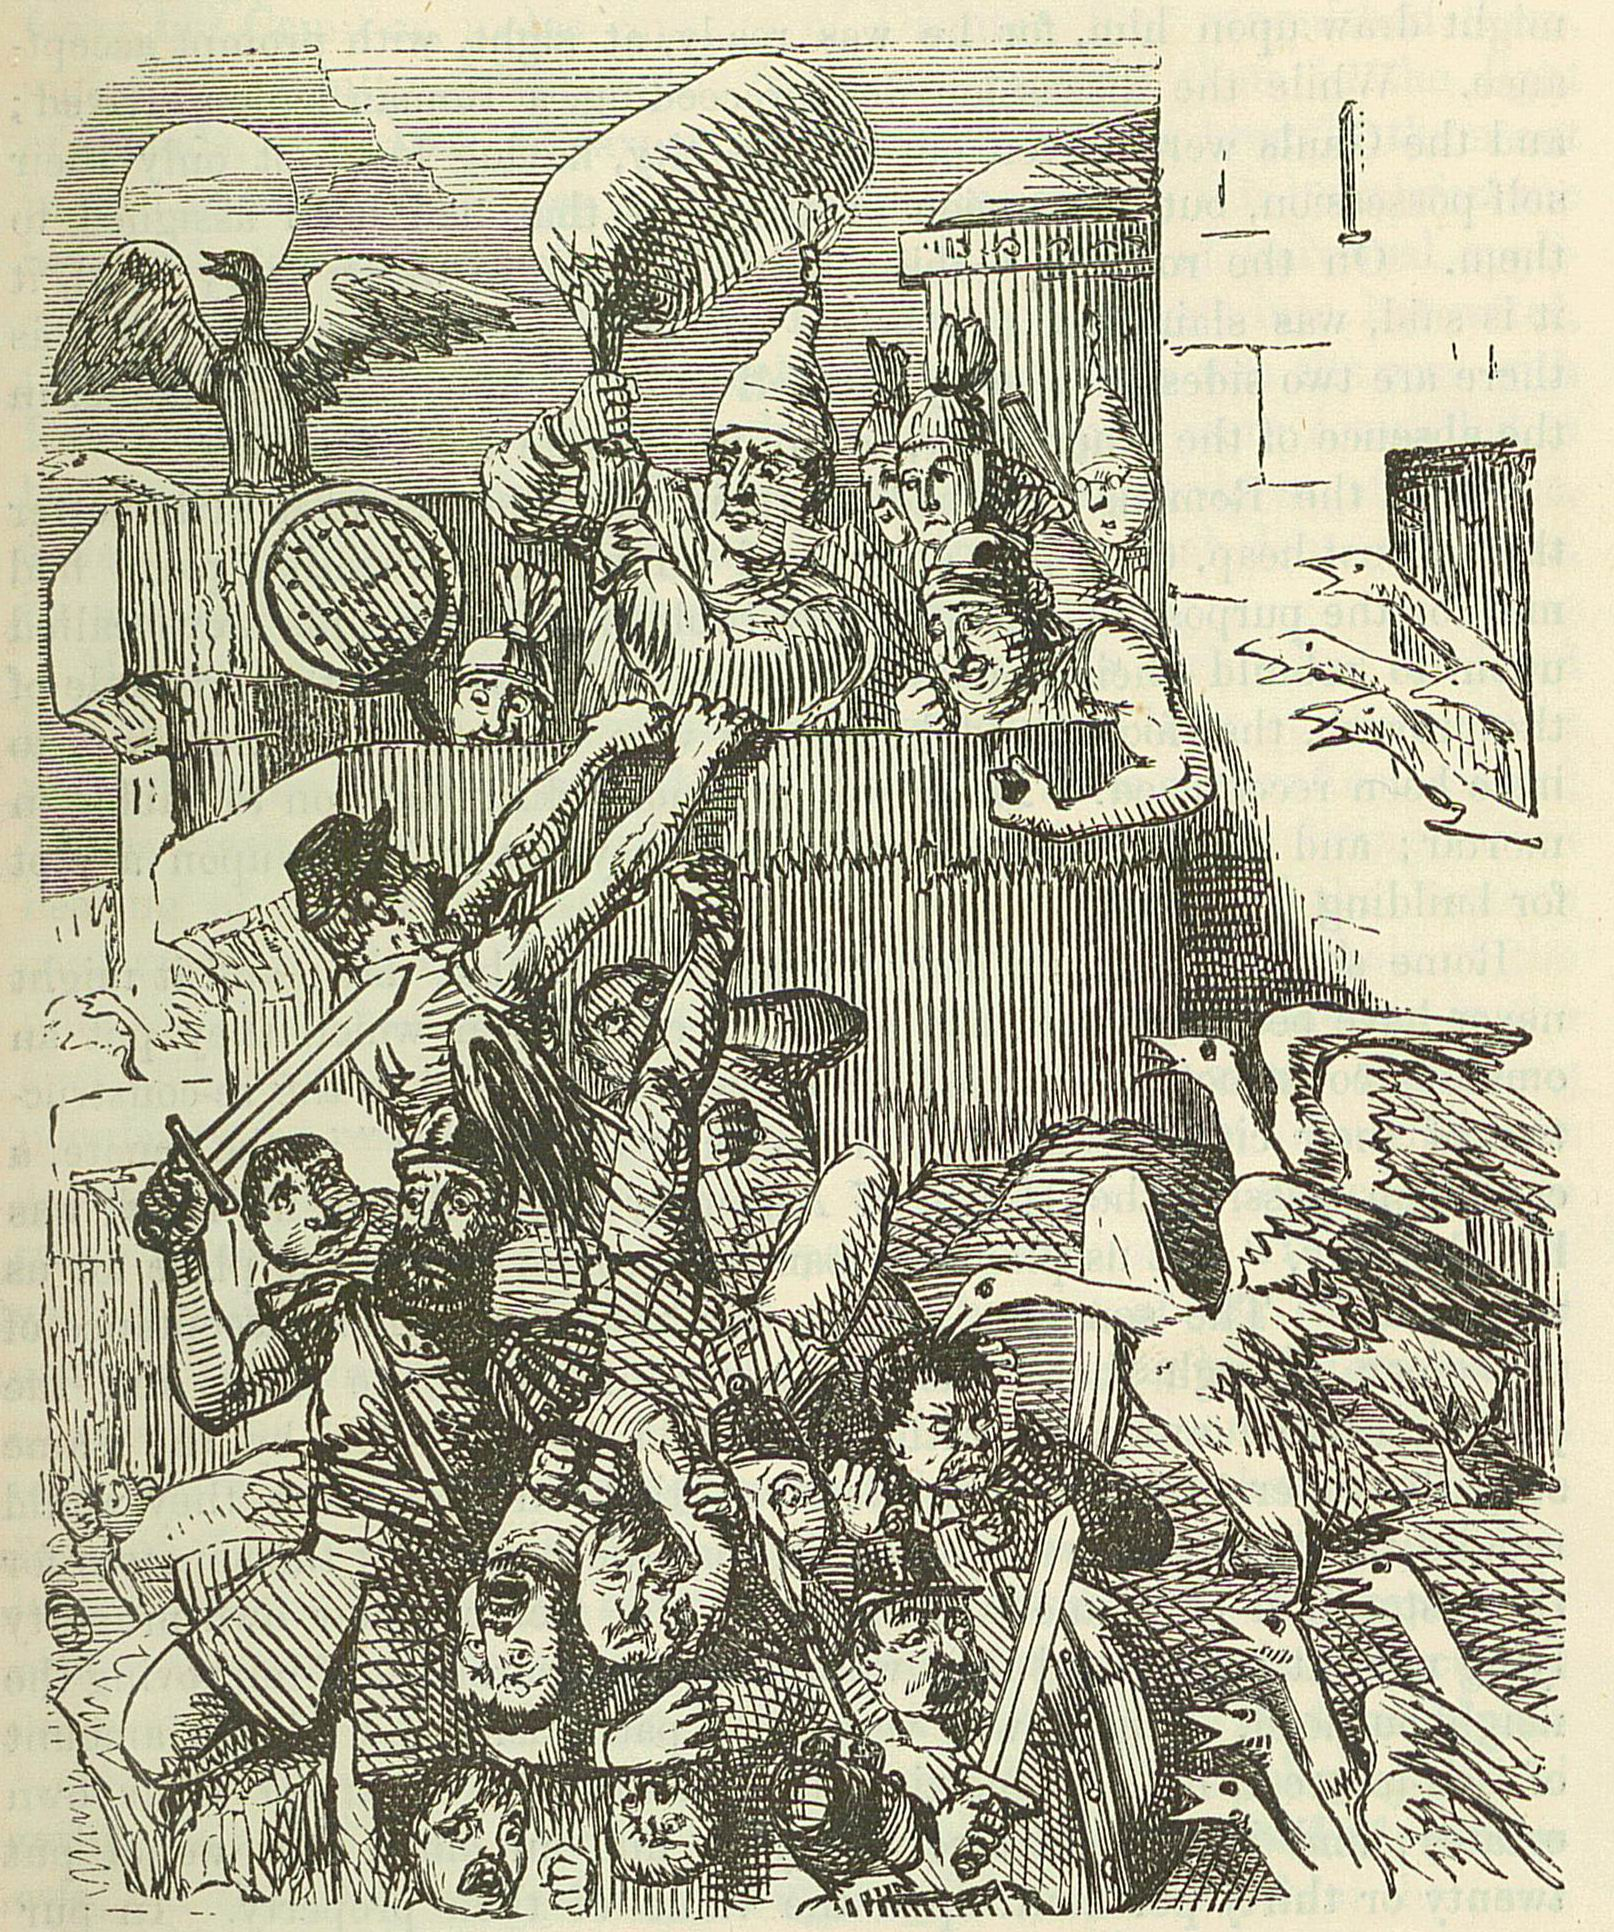 Comic_History_of_Rome_p_093_The_Citadel_saved_by_the_cackling_of_the_Geese